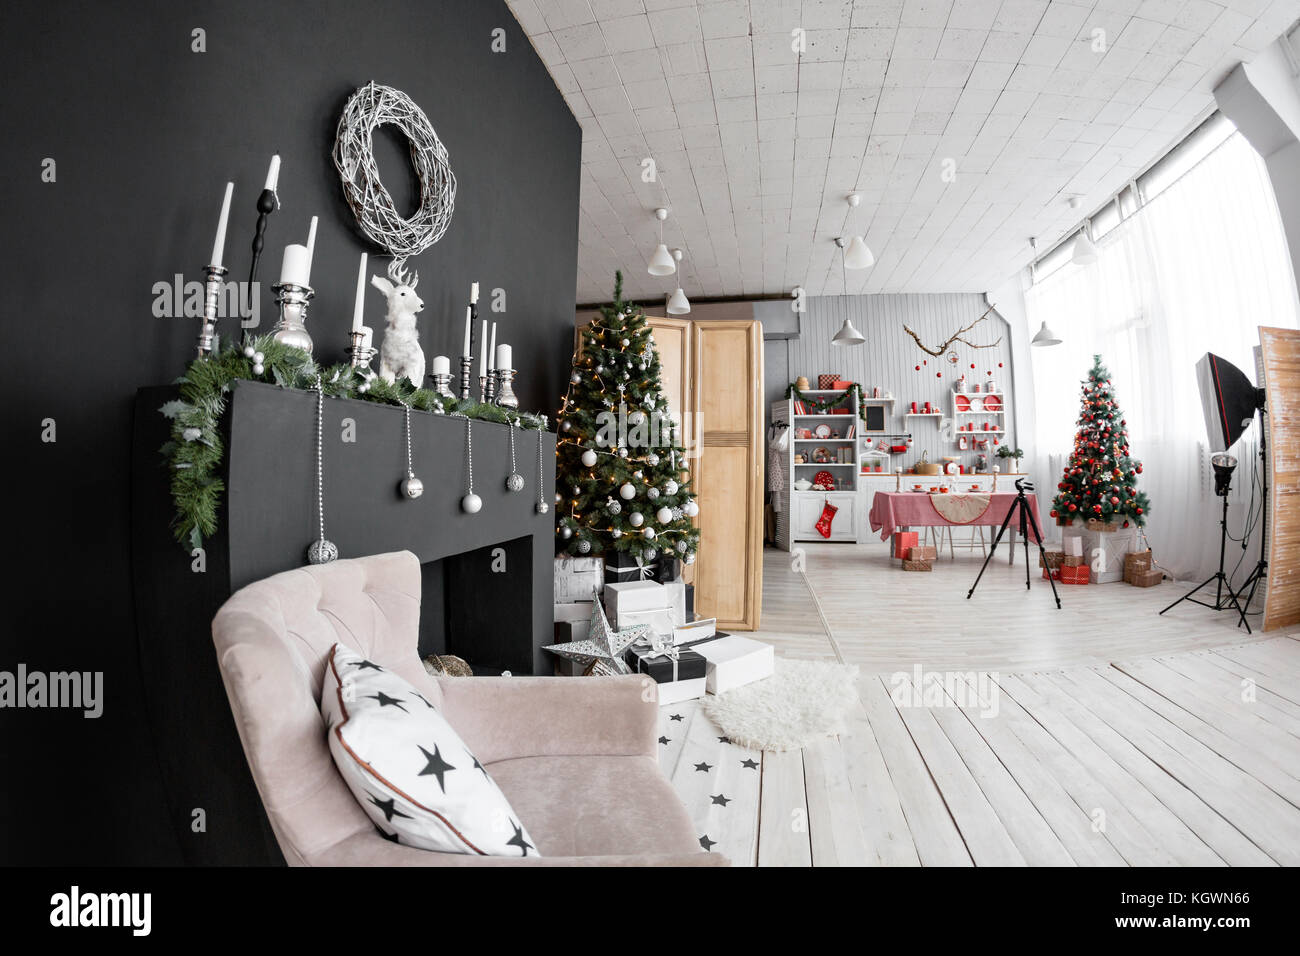 Space in the Photo studio with daylight. Christmas decorations. - Stock Image